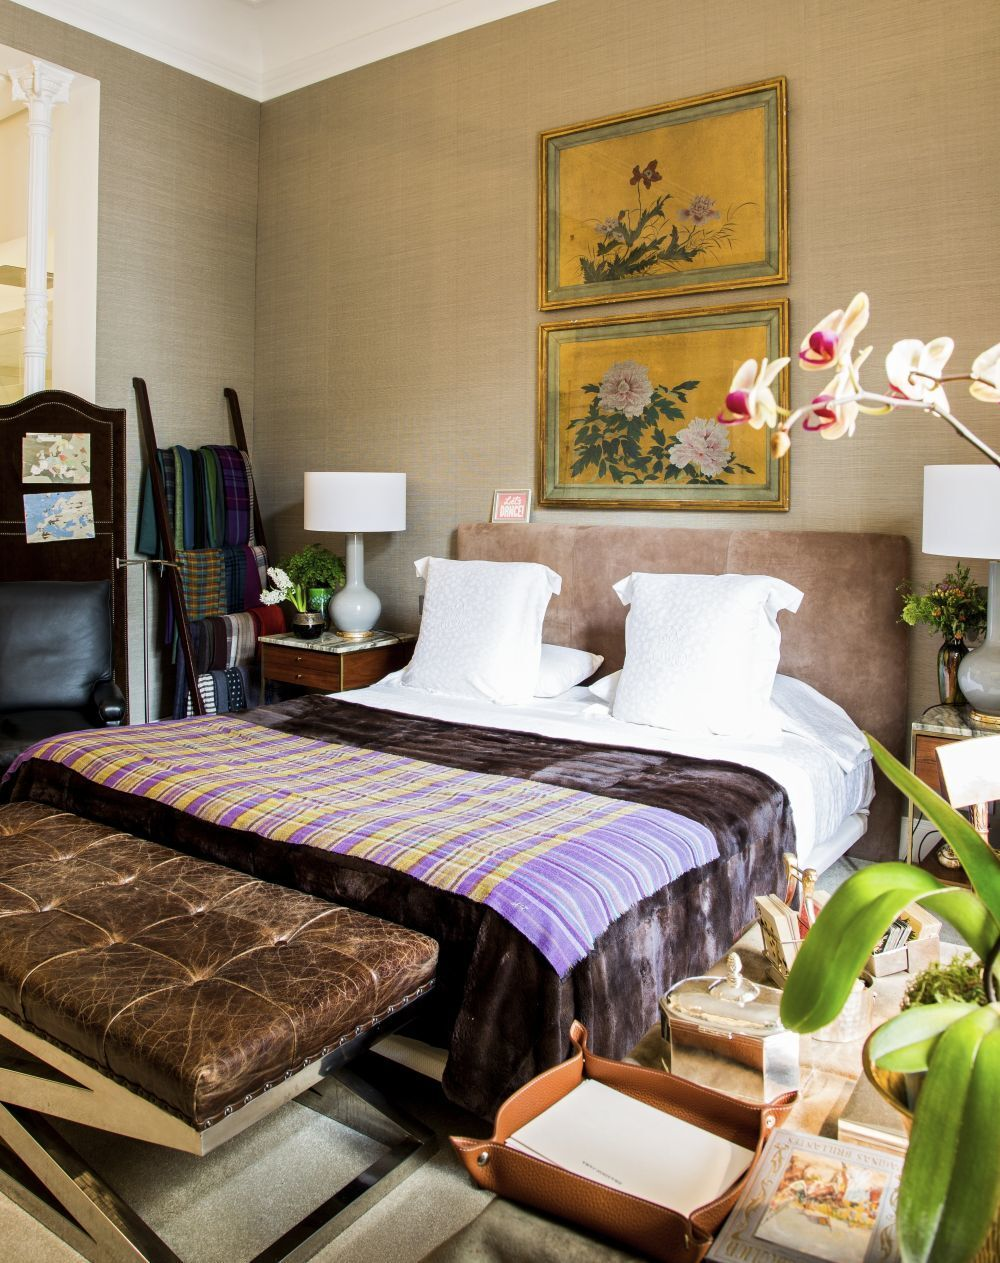 Manolo March Madrid home decorated by Pepa Yuste